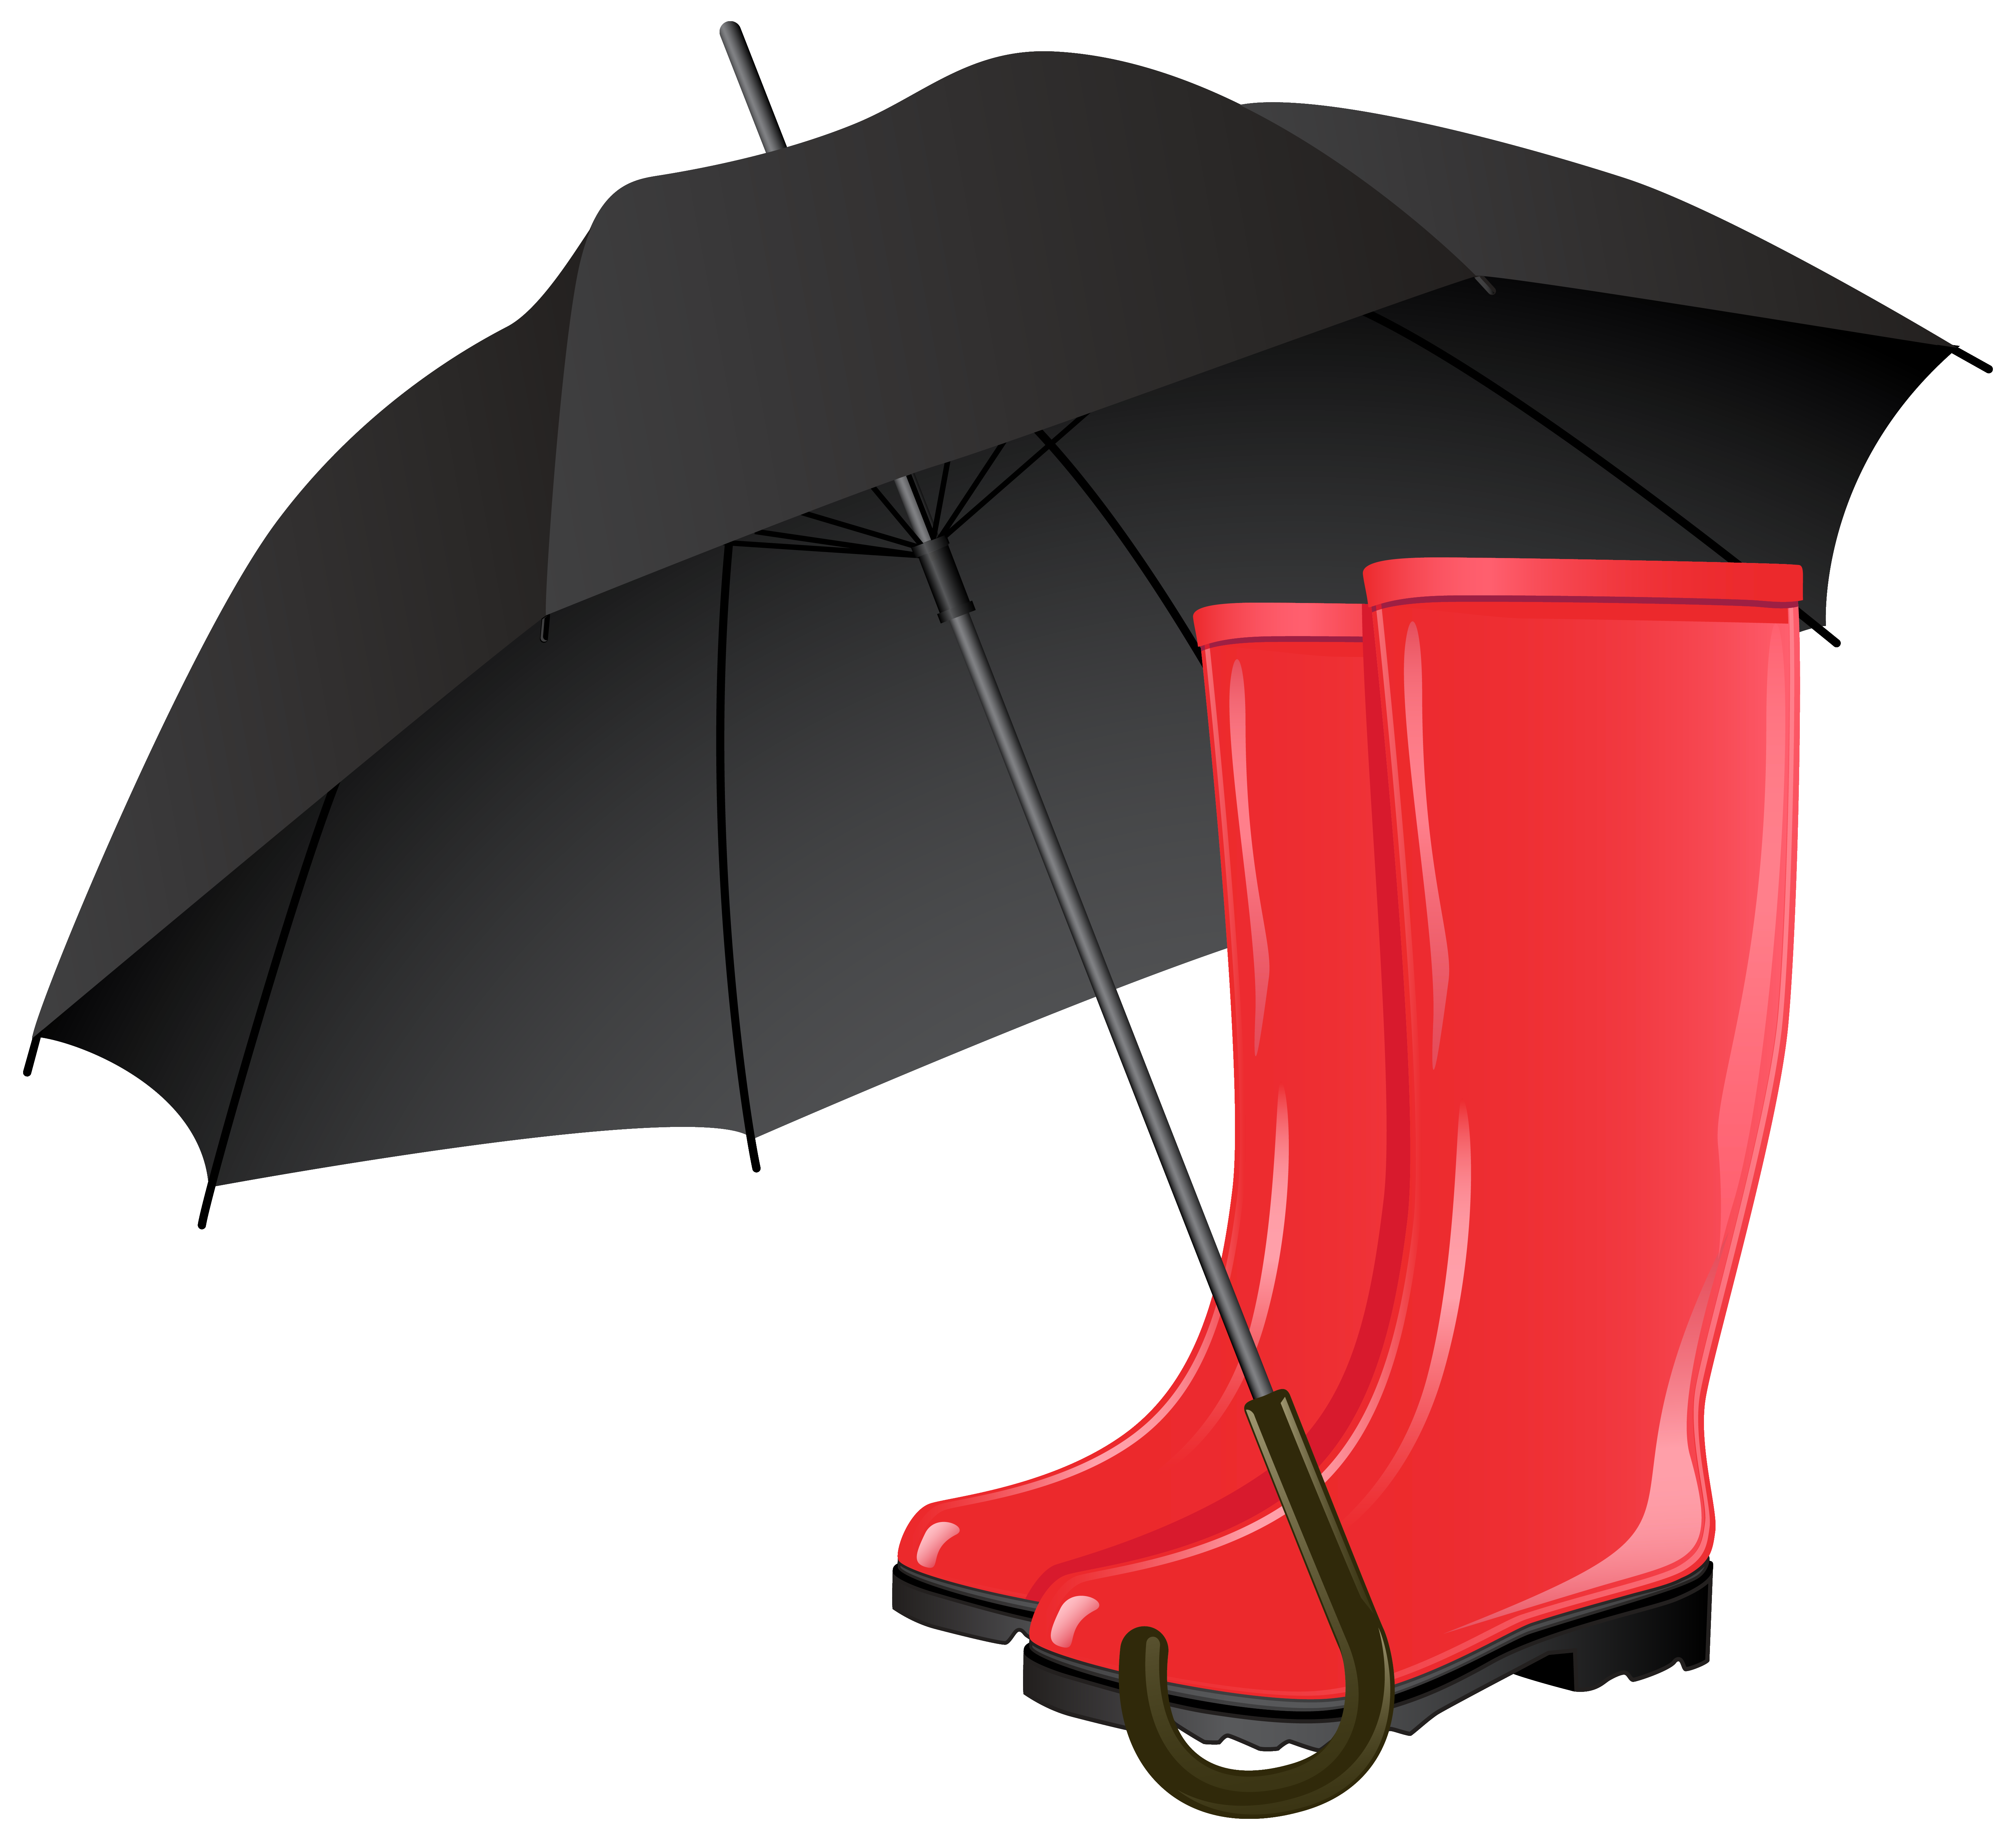 Boots clipart transparent background. Rubber and umbrella png